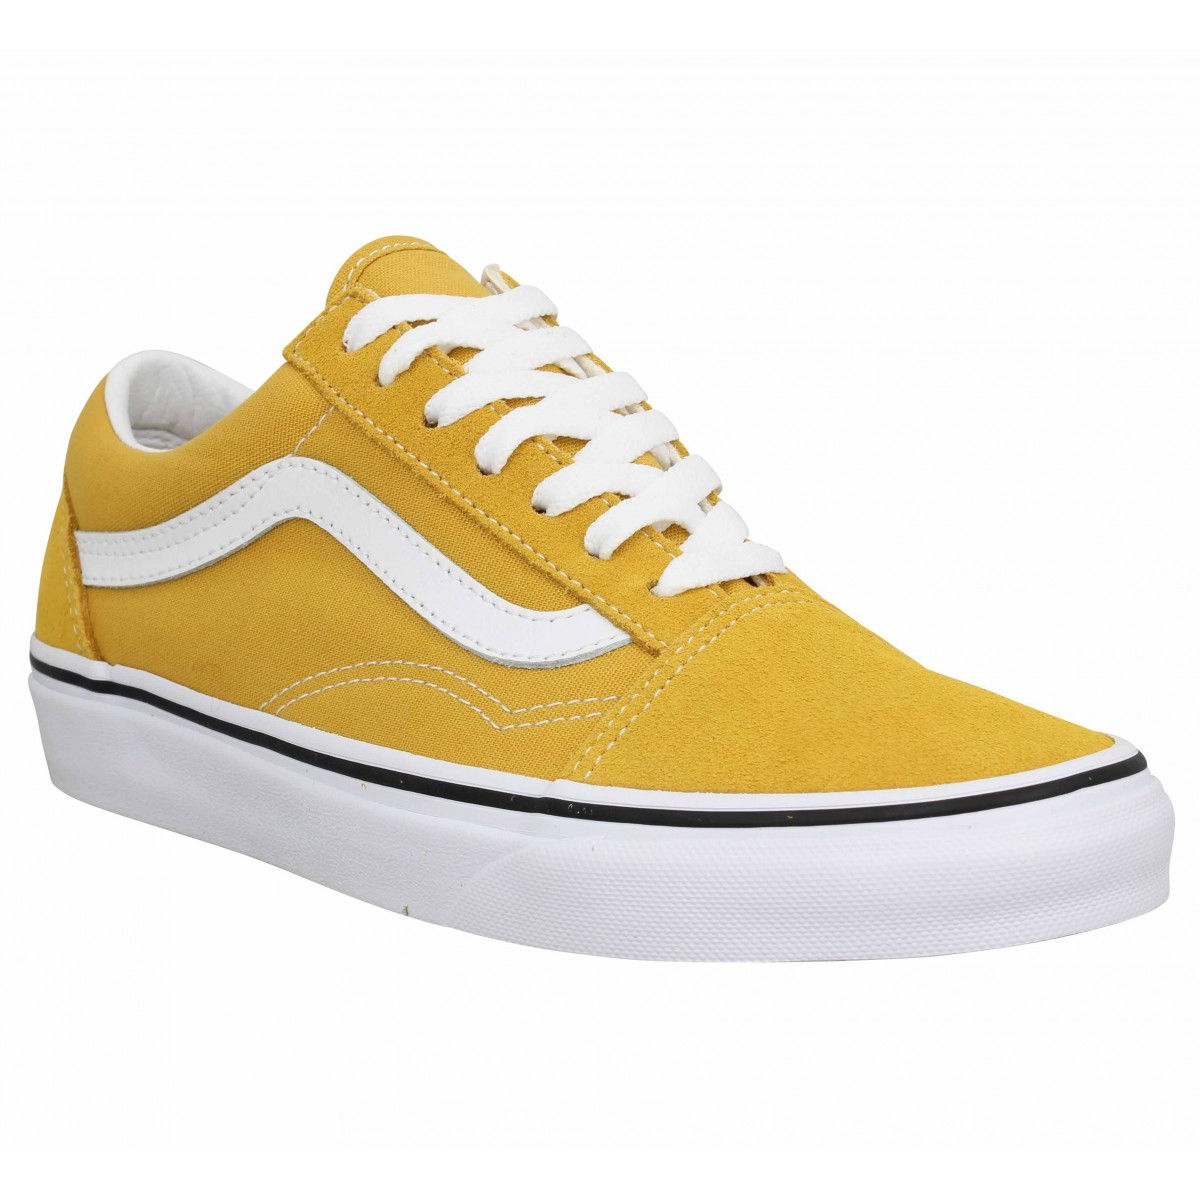 Baskets VANS Old Skool velours toile Jaune